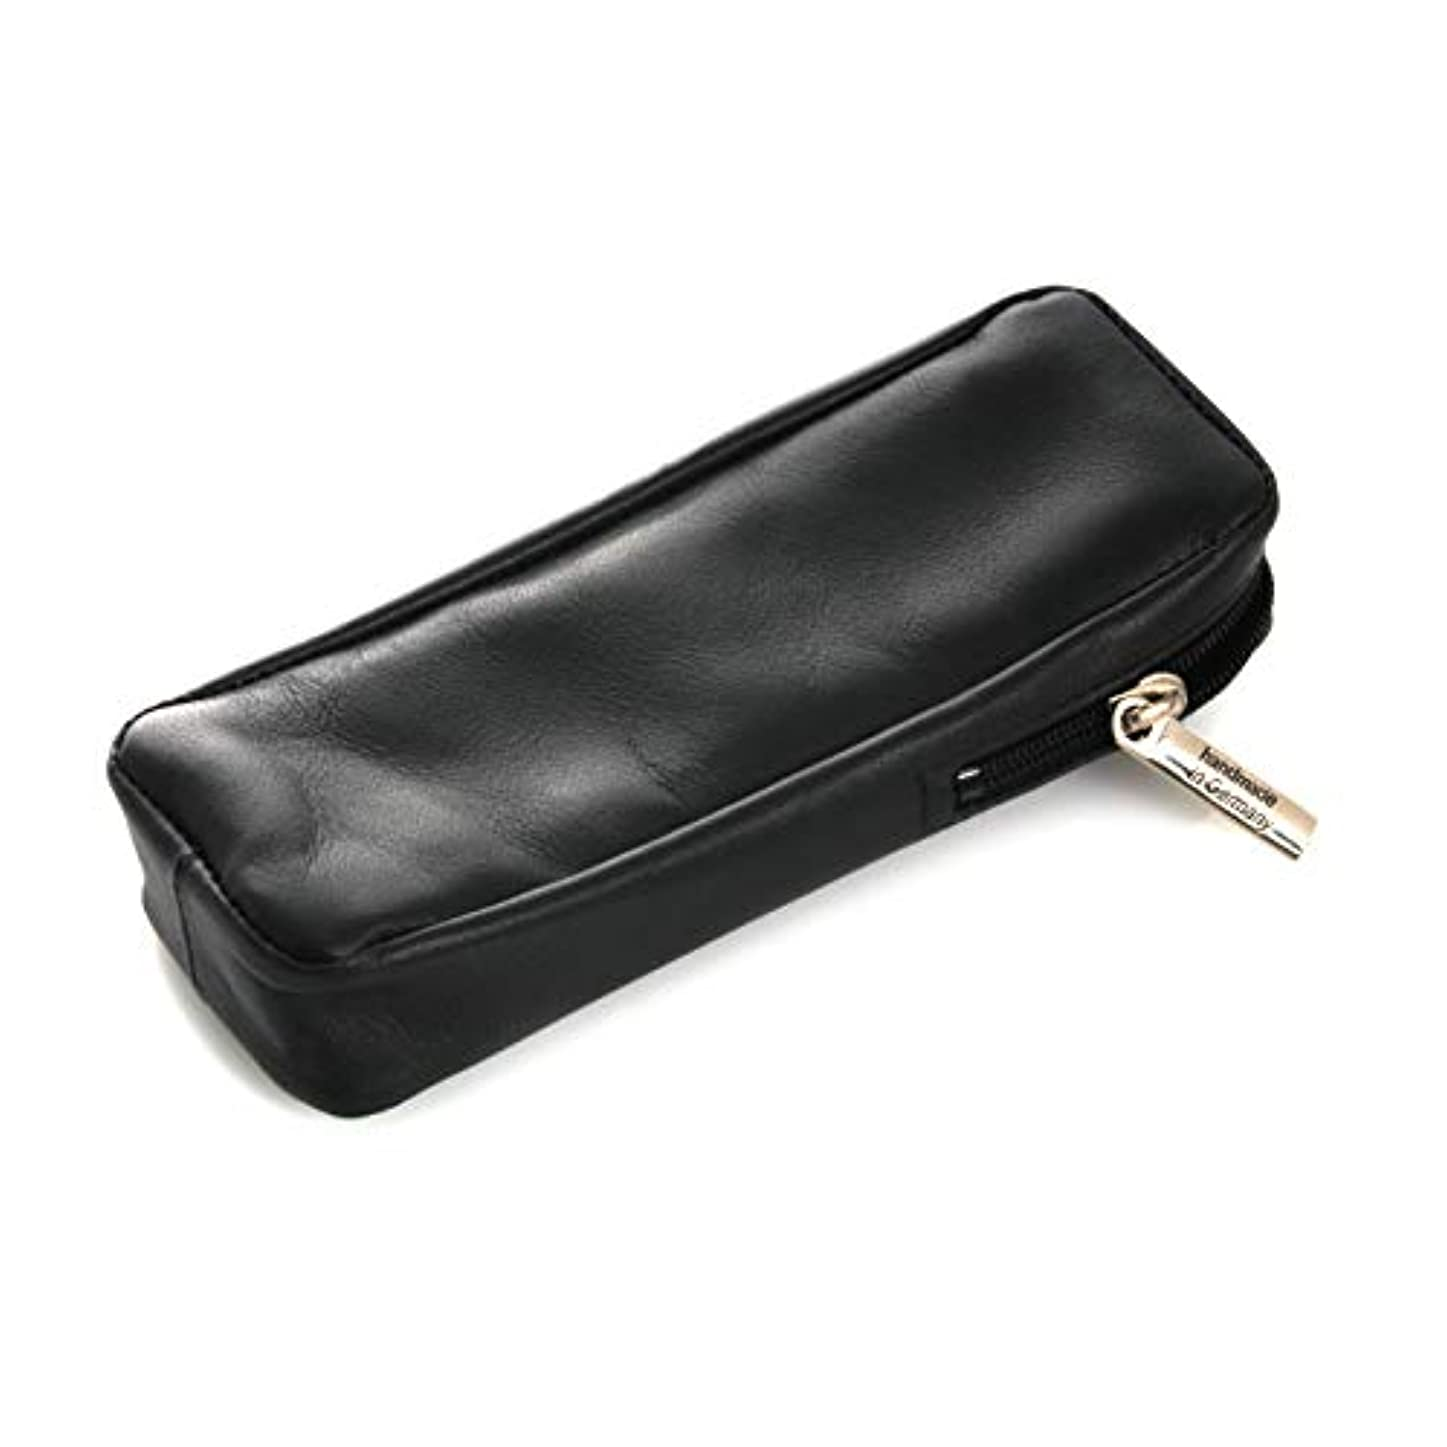 被害者先行するうるさいRazor Case 13 cm, Leather, Black, Dovo Solingen